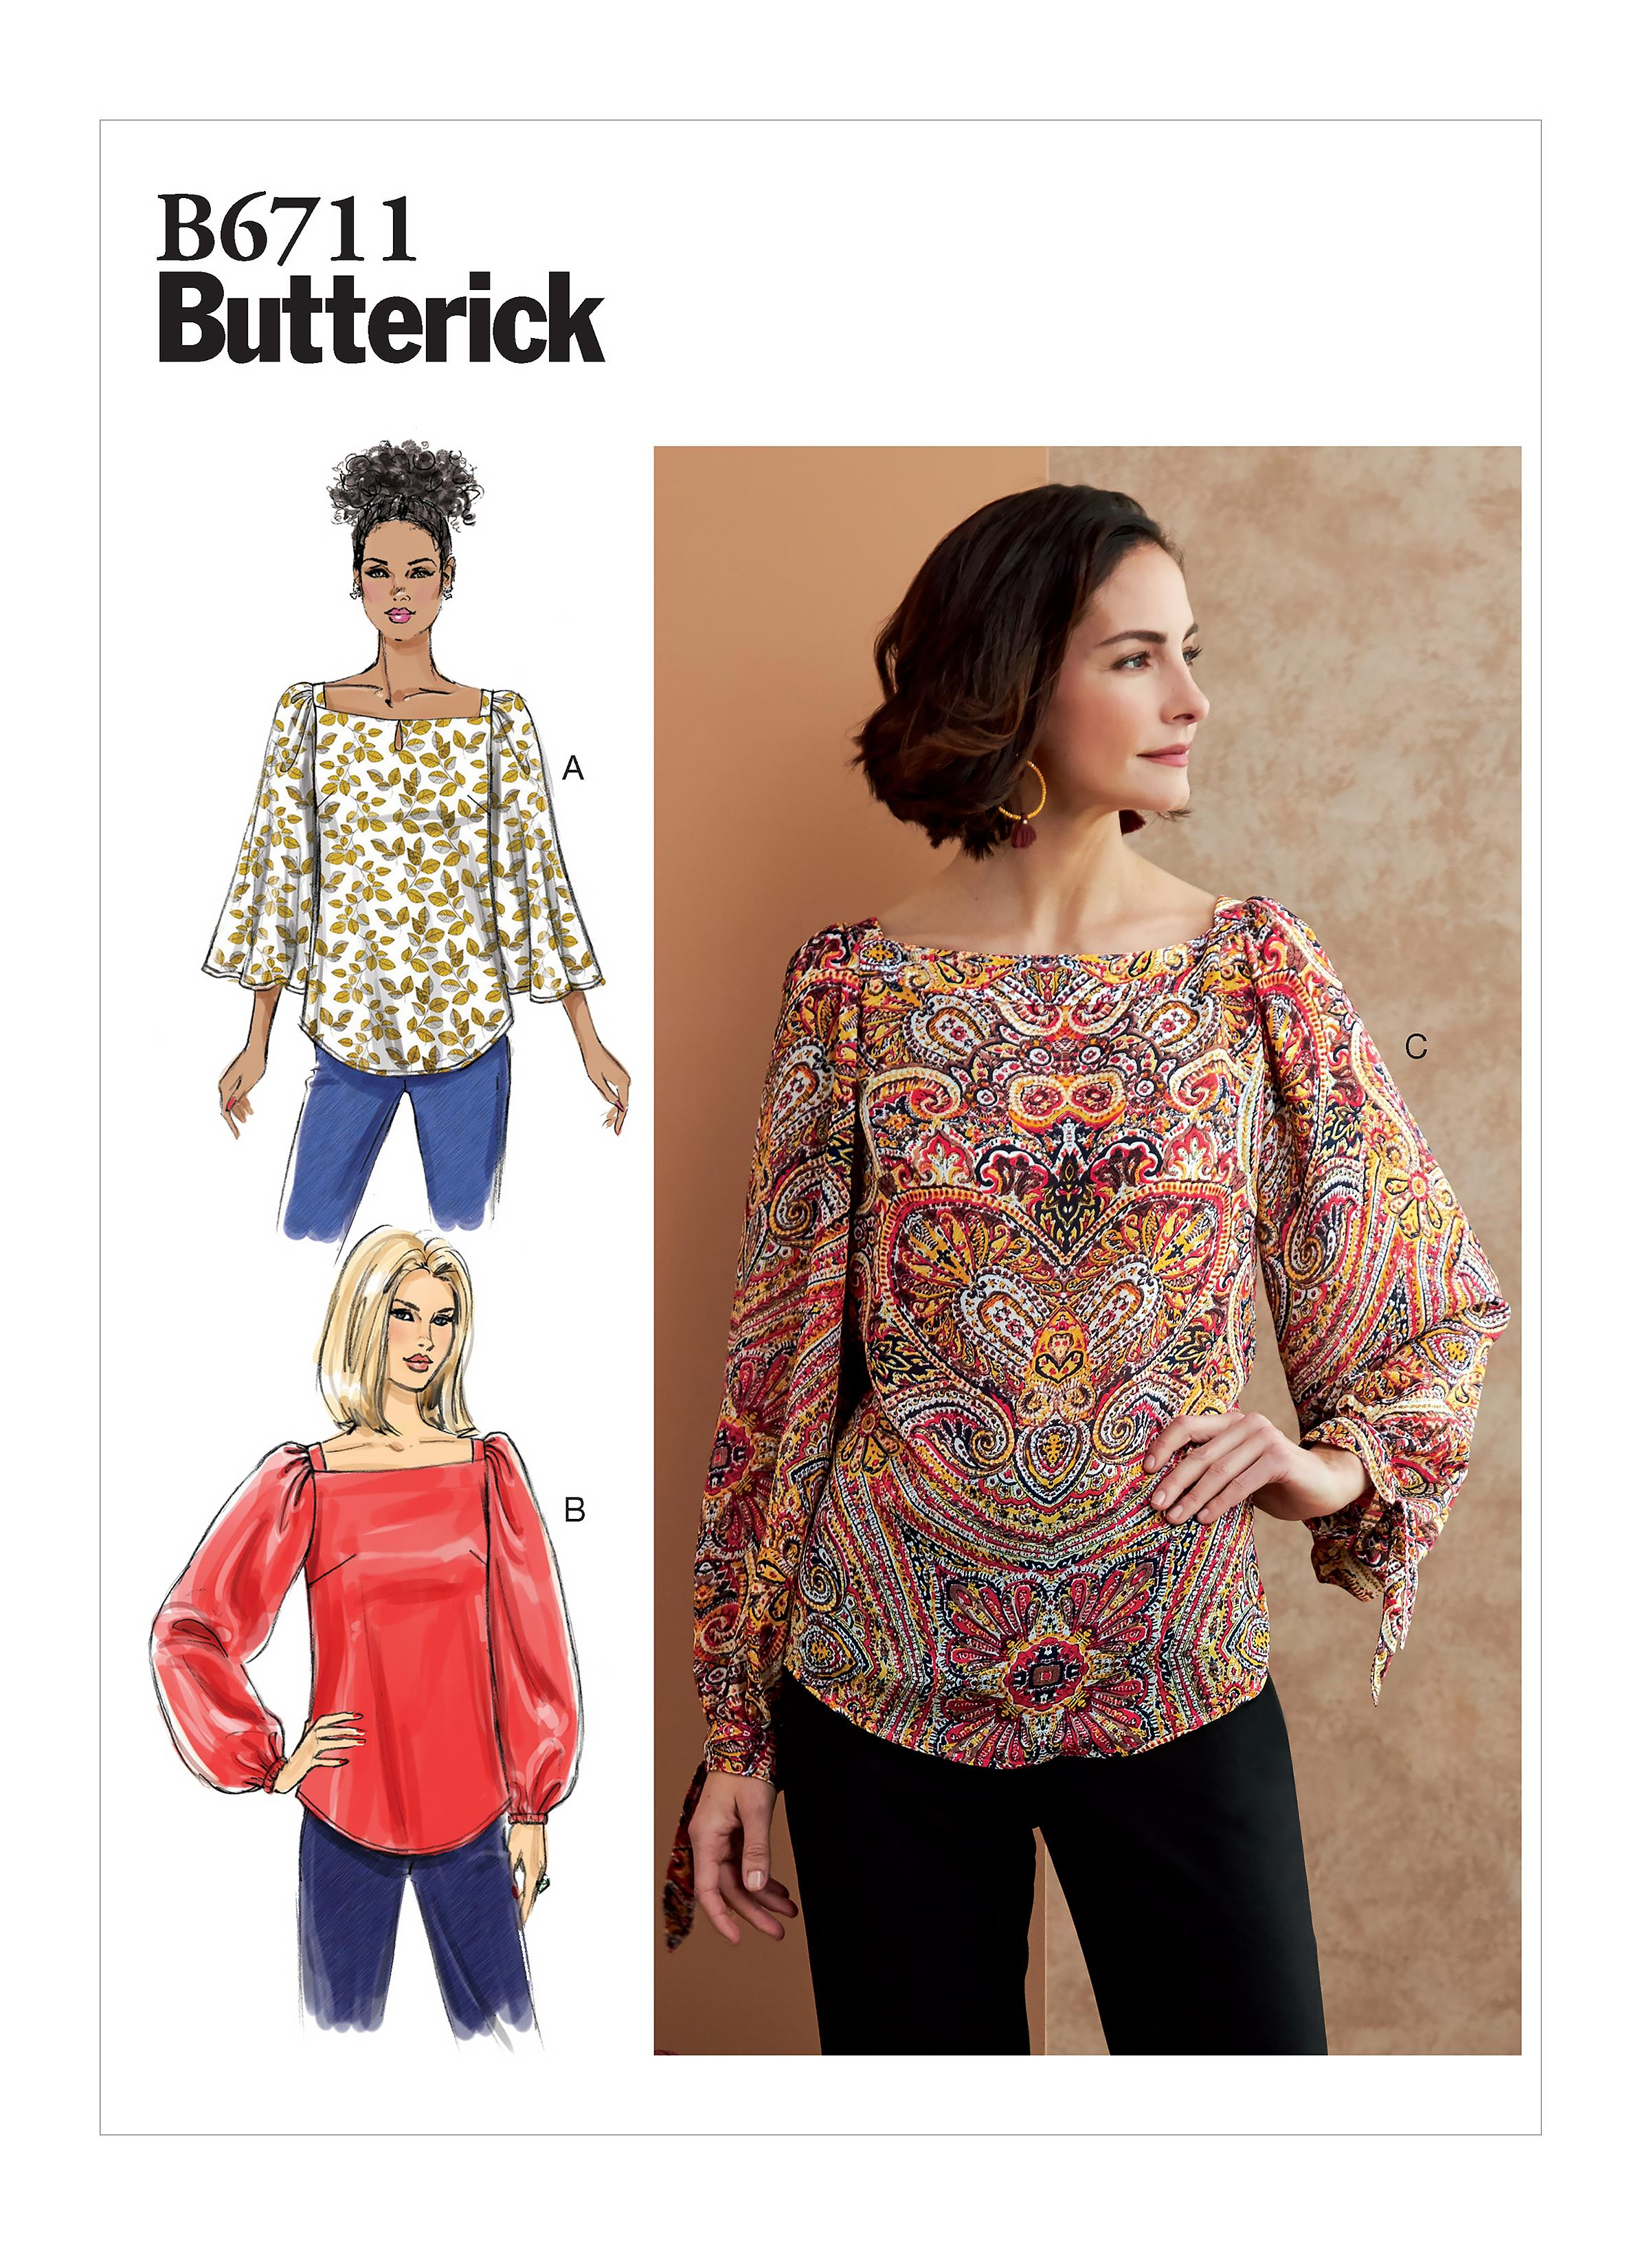 Butterick B6711 Misses' Top